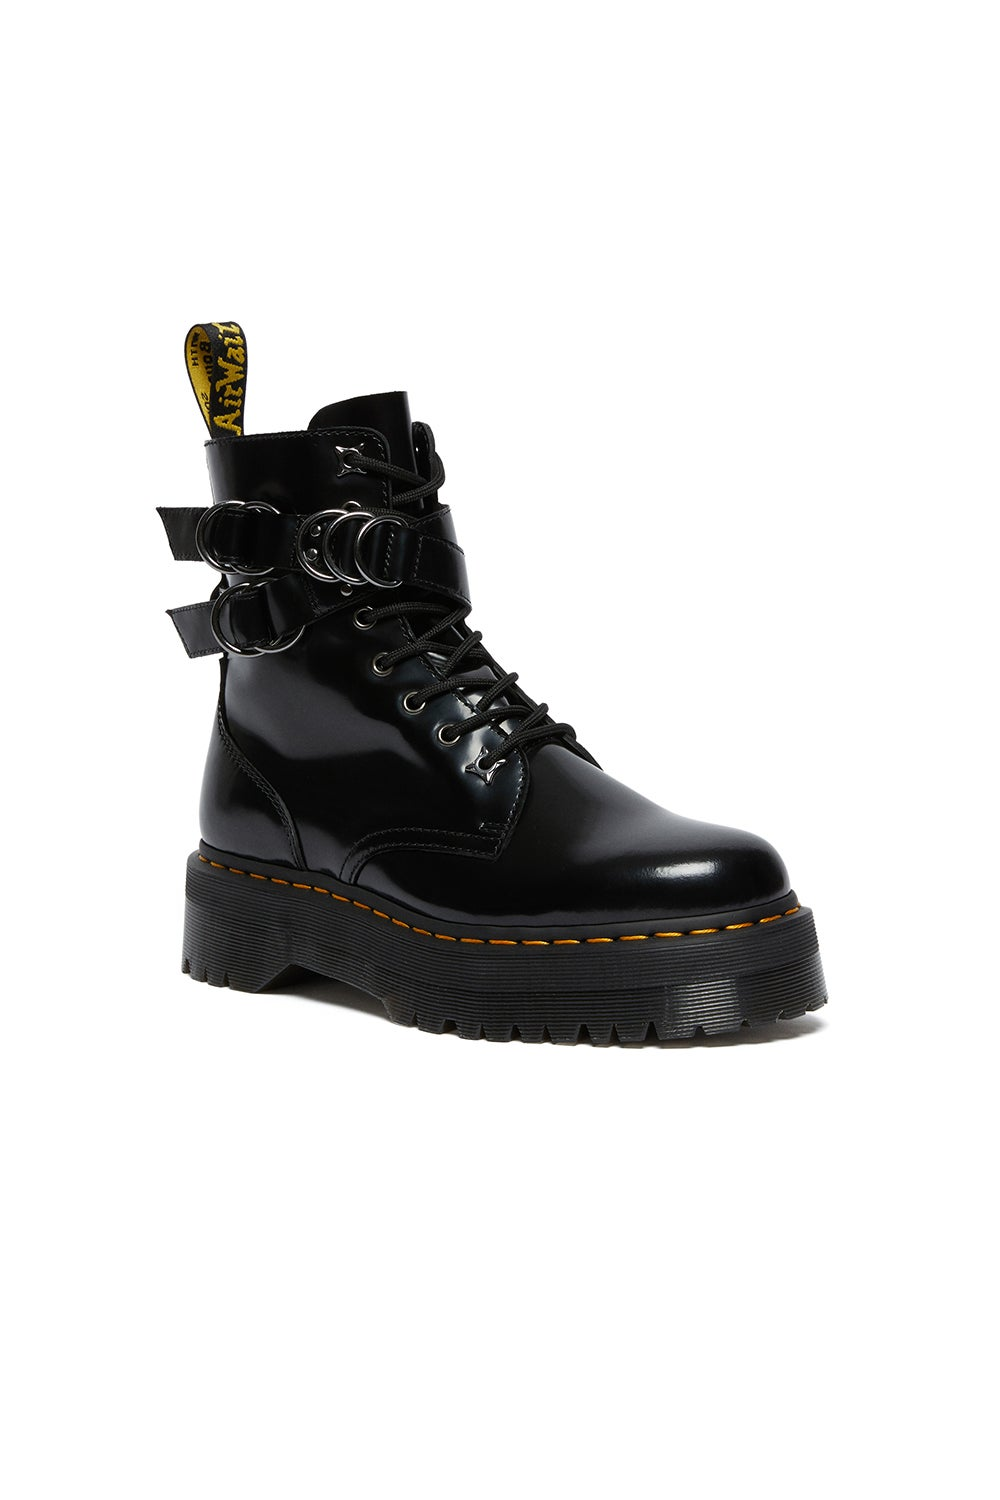 Dr. Martens Jadon Hardware Boot Black